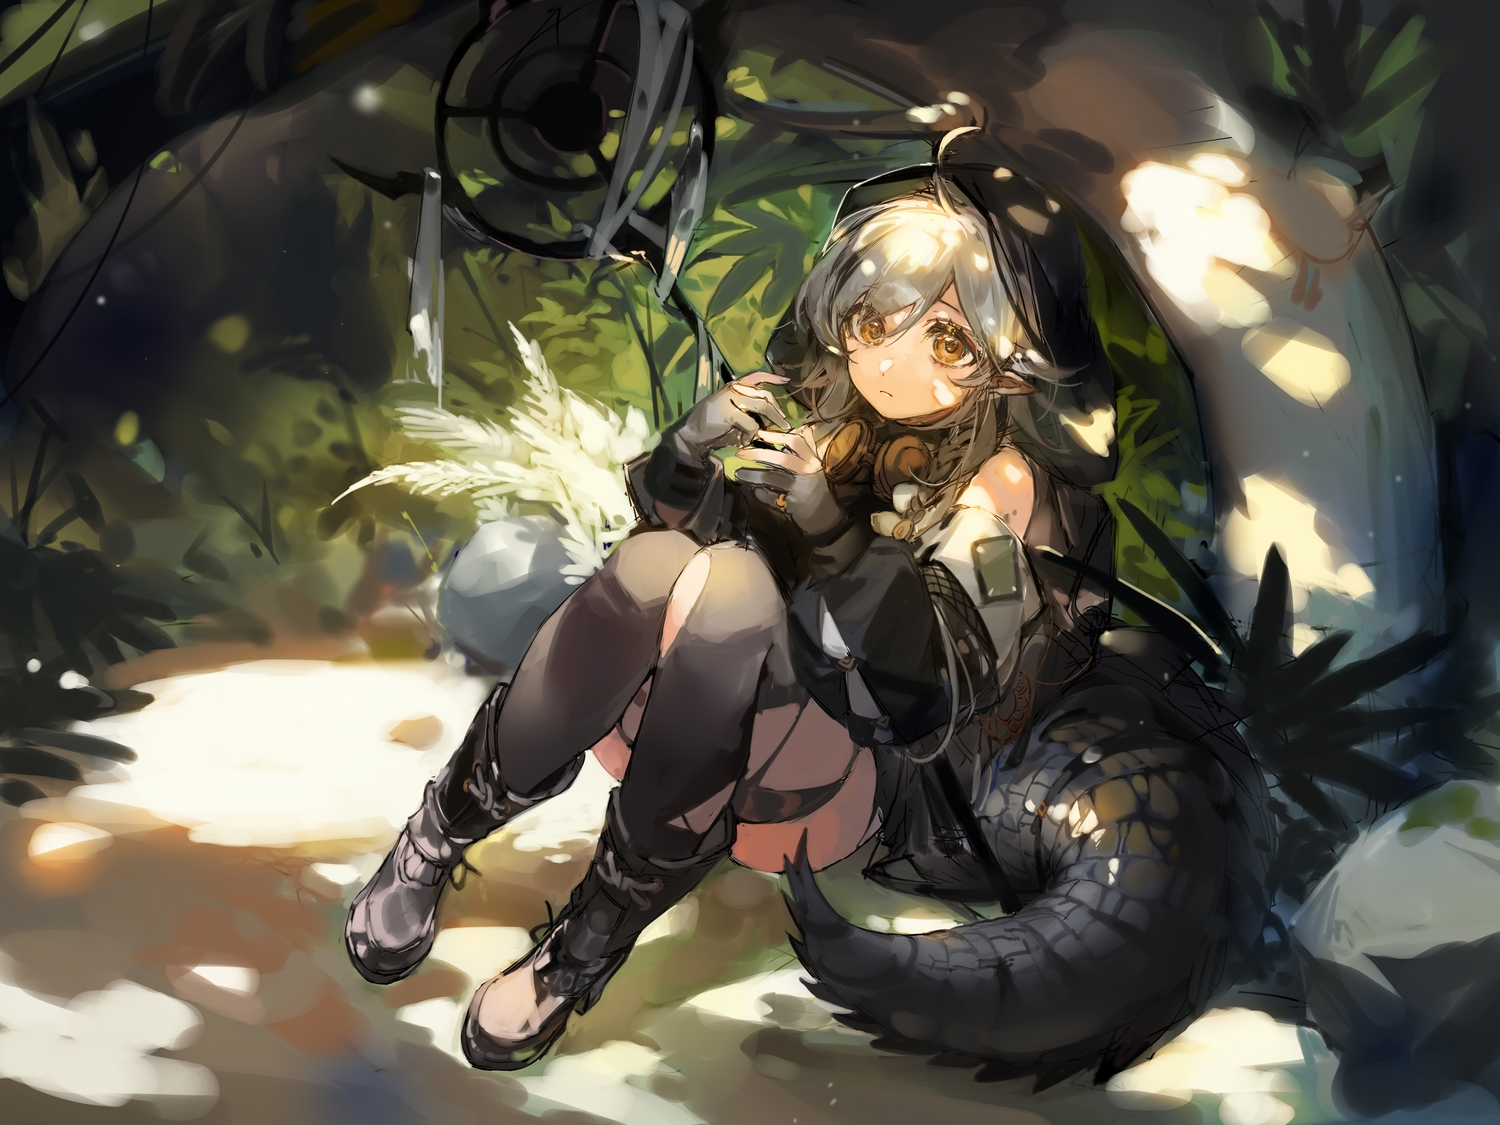 arknights boots ciloranko forest gloves goggles gray_hair hoodie long_hair orange_eyes pointed_ears sketch staff tail thighhighs tomimi_(arknights) tree